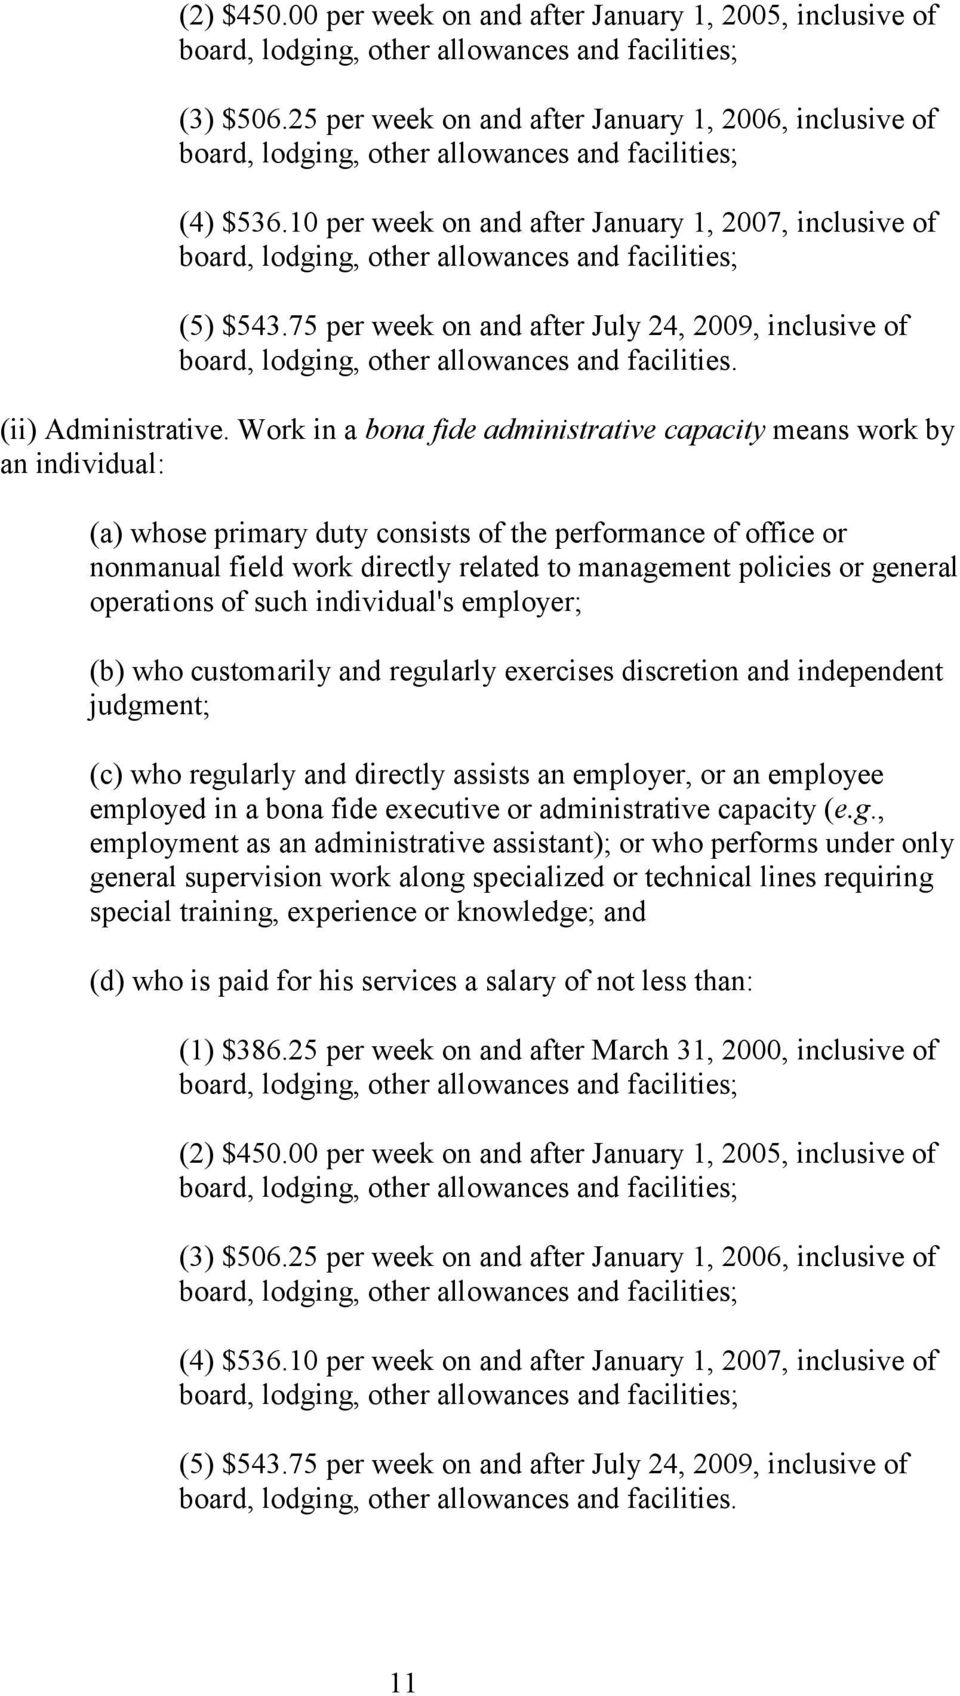 Work in a bona fide administrative capacity means work by an individual: (a) whose primary duty consists of the performance of office or nonmanual field work directly related to management policies